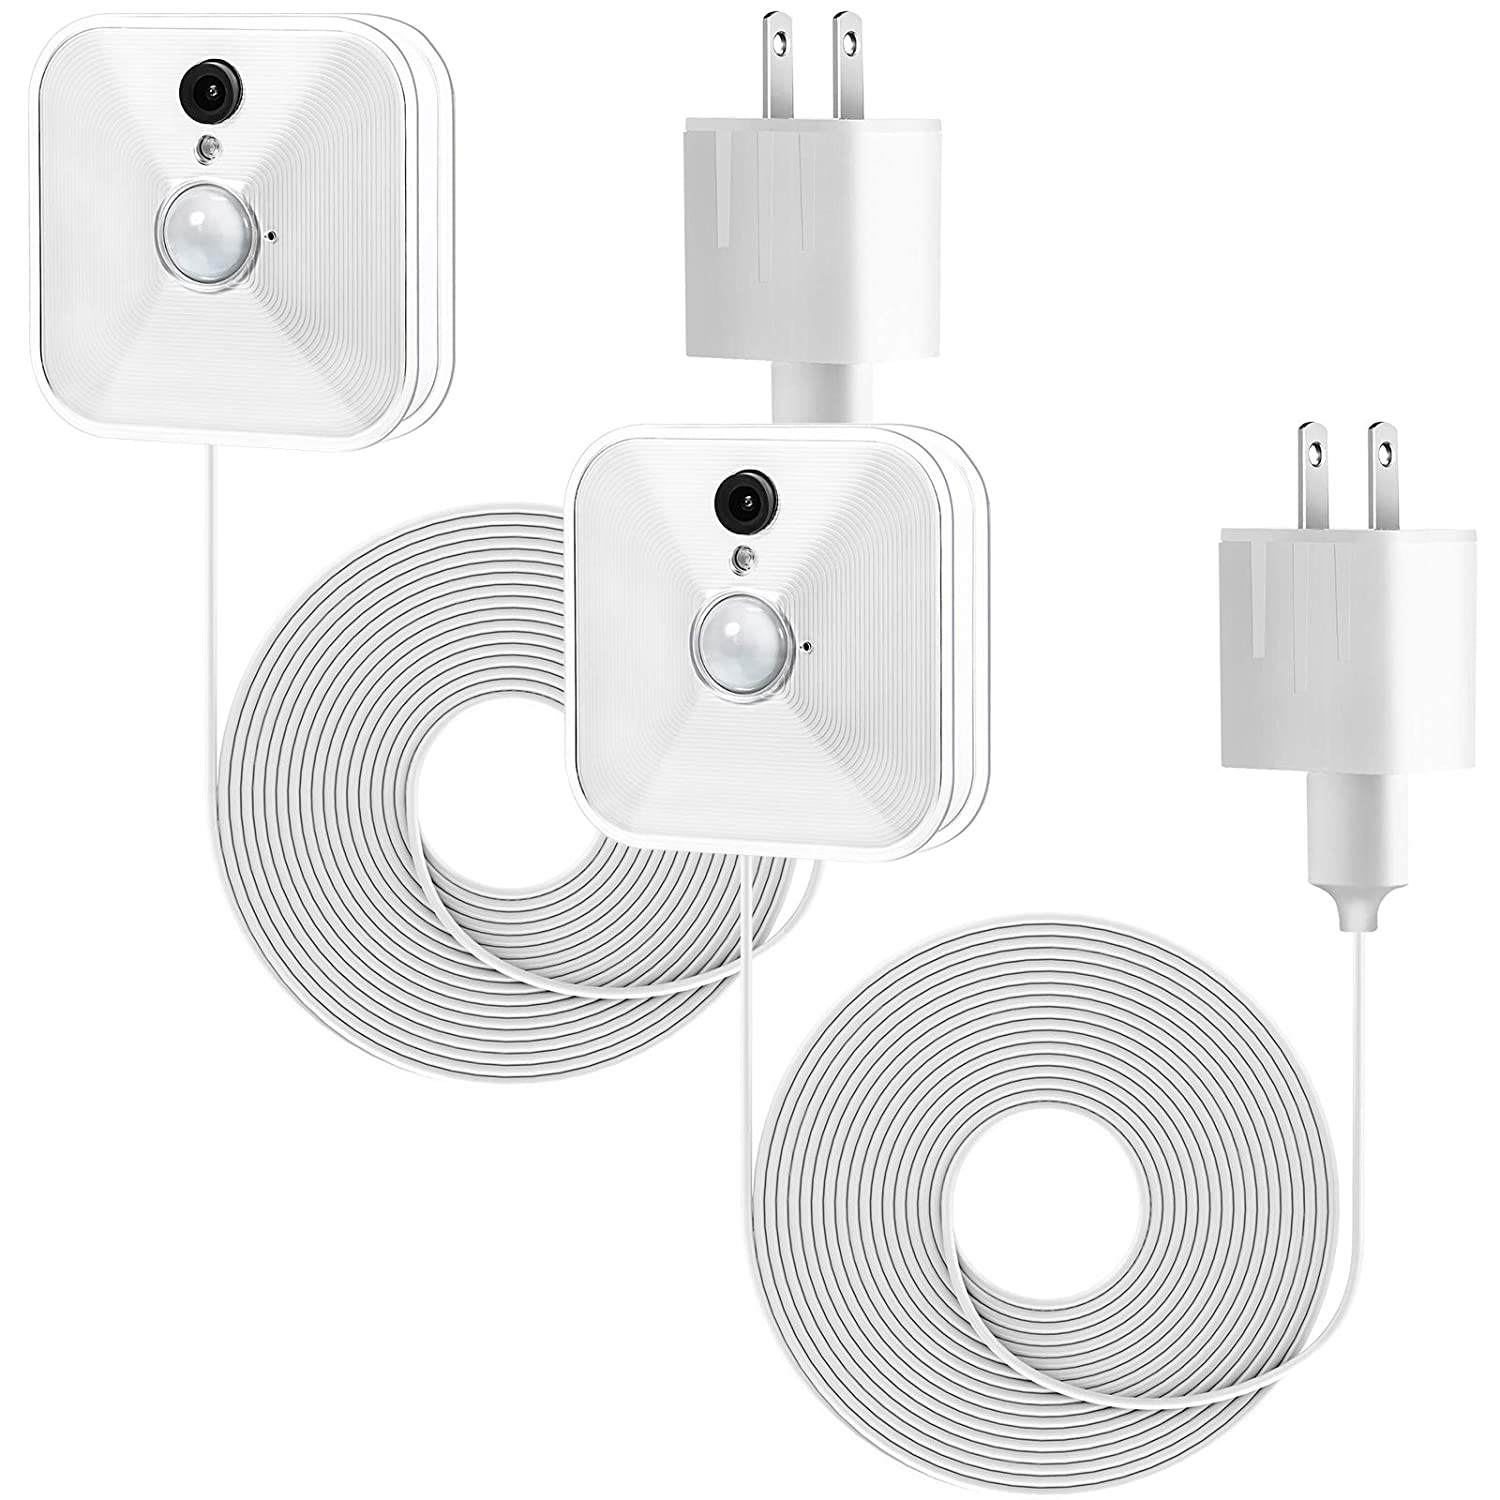 Power Adapter with 20 ft/6 m Weatherproof Cable for Blink Outdoor XT XT2/Indoor Home Security Camera, Continuously Operate Blink Security Camera, No Need to Change The Battery (2 Pack White)